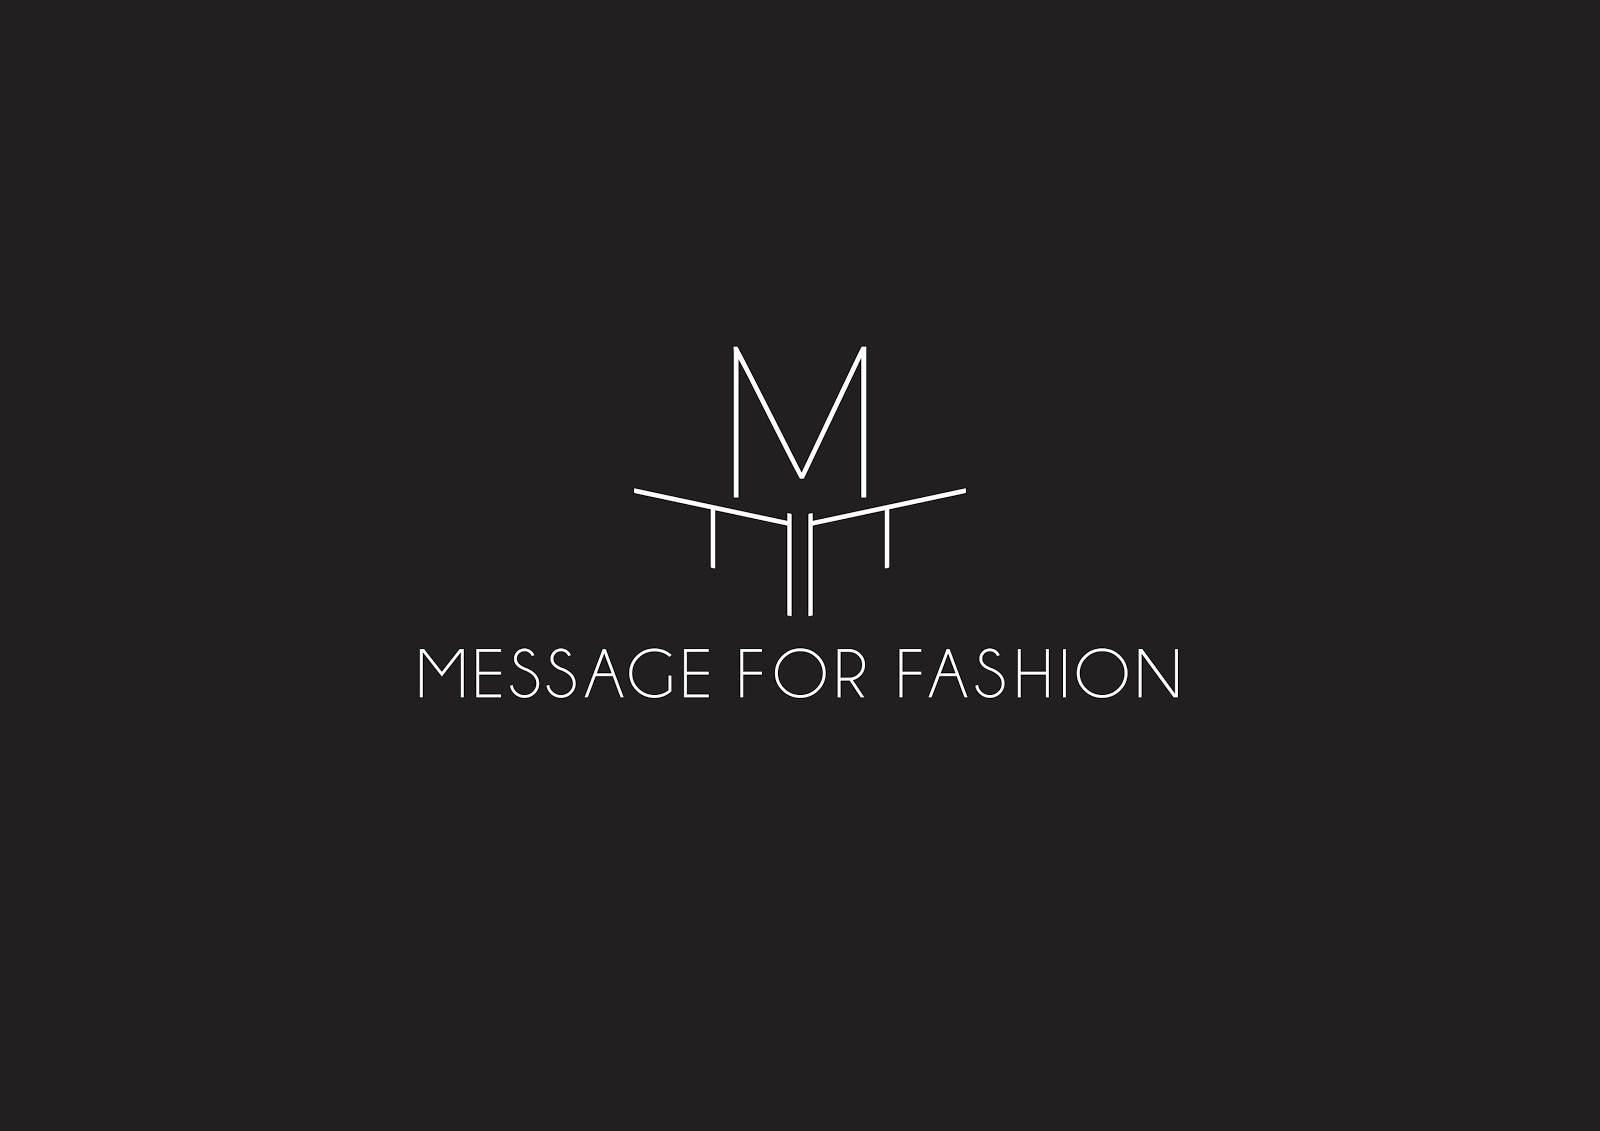 messageforfashion